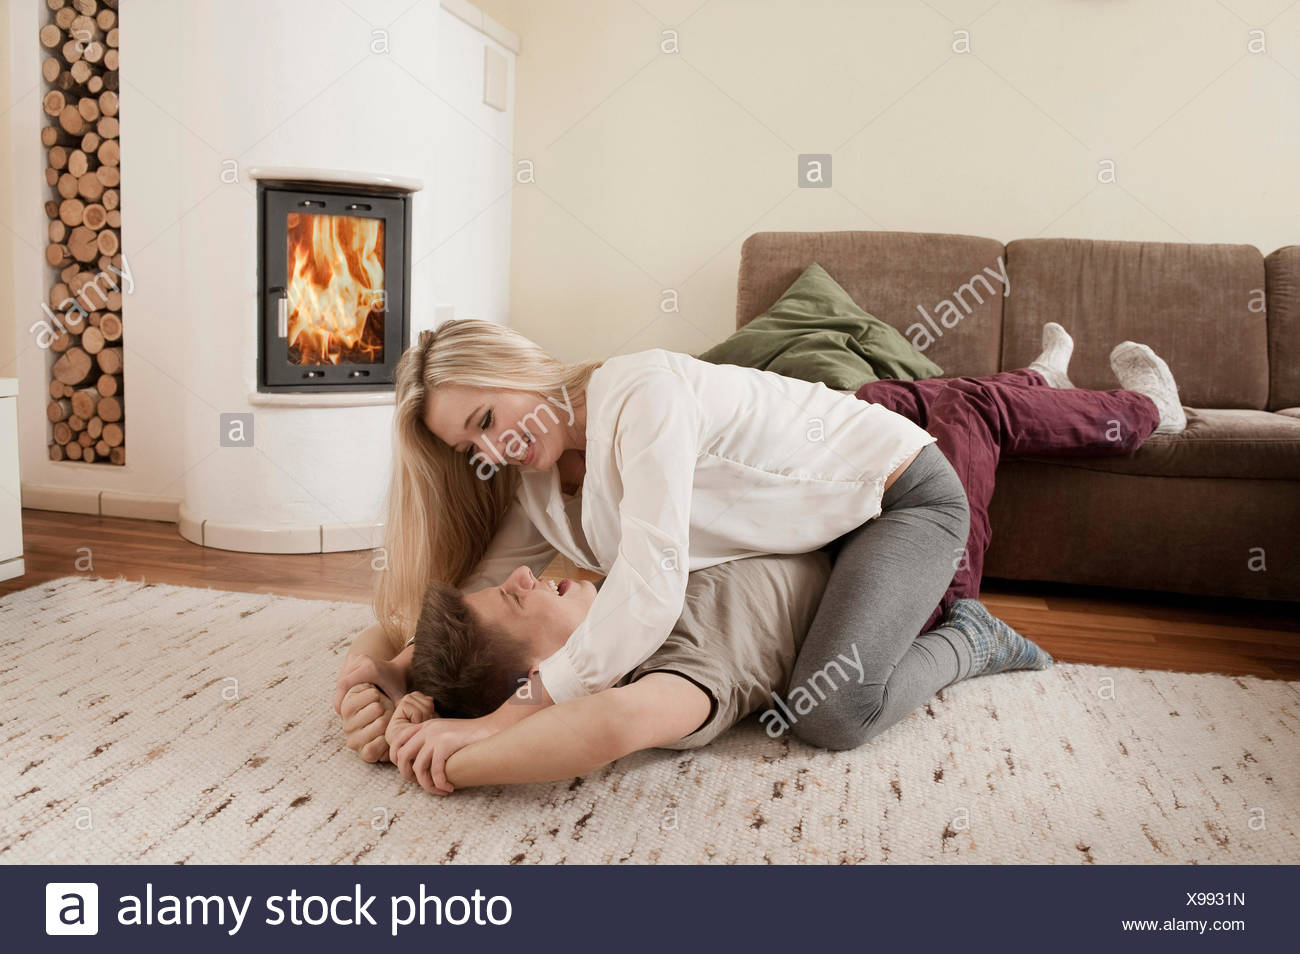 Teenage couple playfighting on carpet in front of fireside - Stock Image